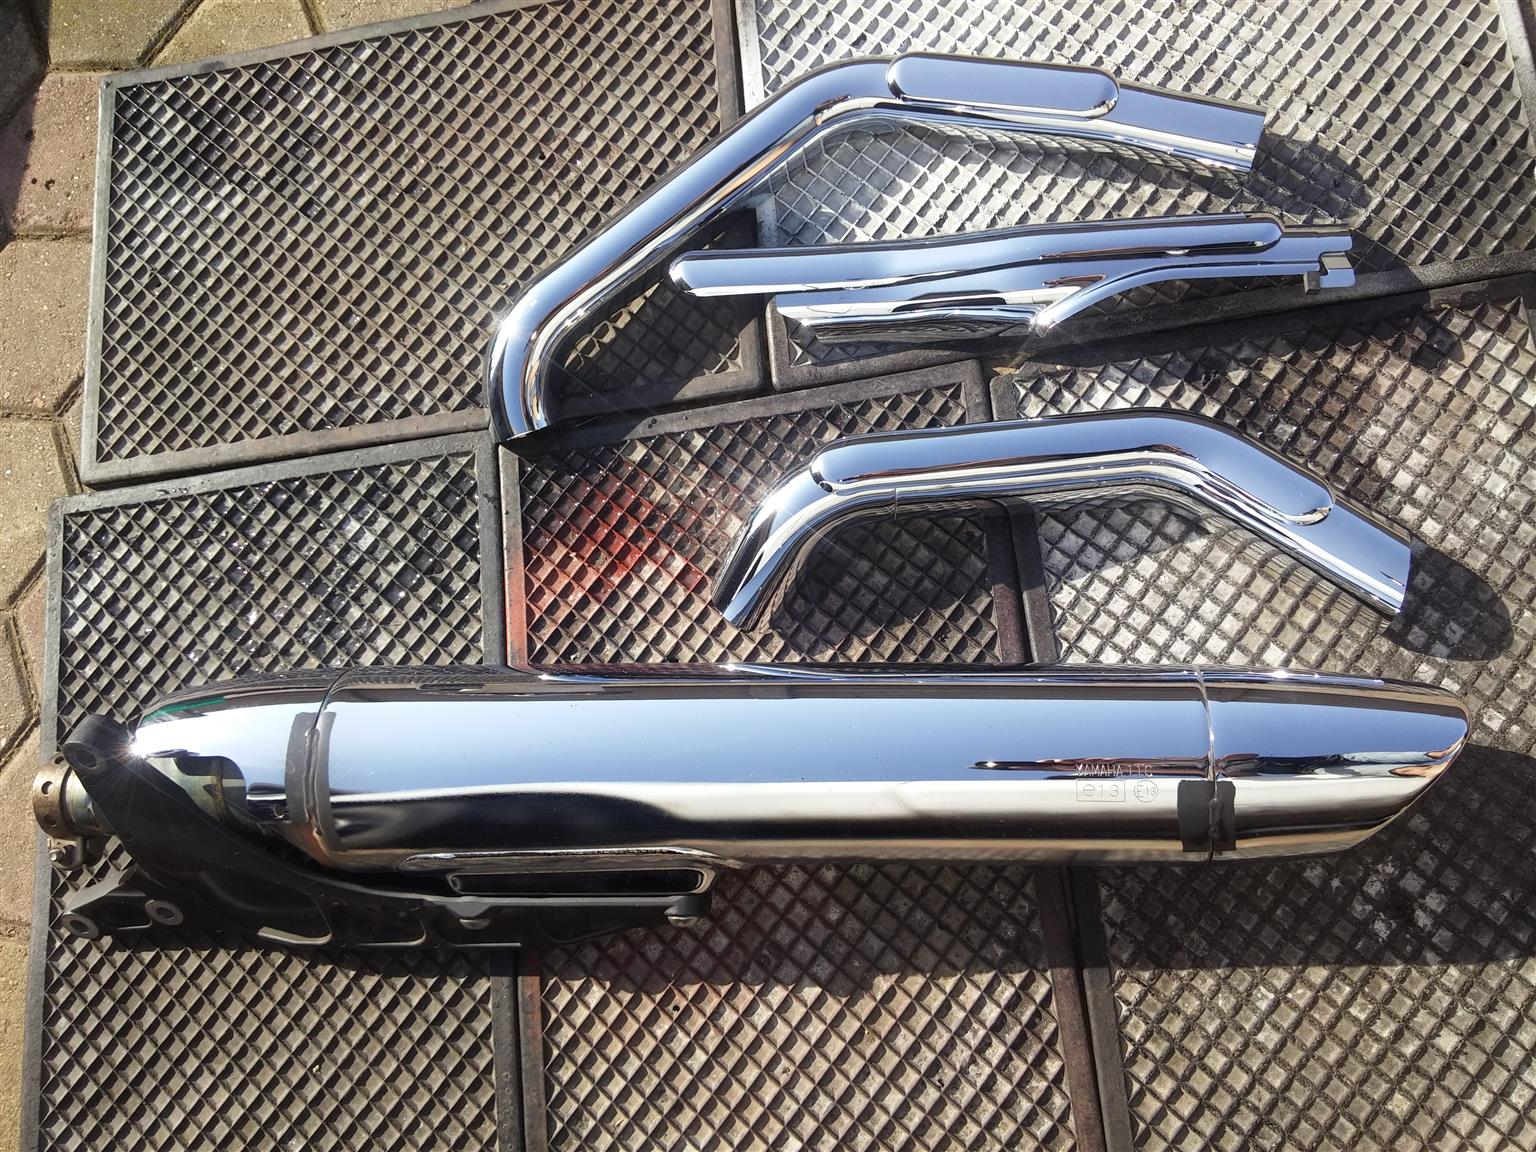 Exhaust Silencer and Chrome covers